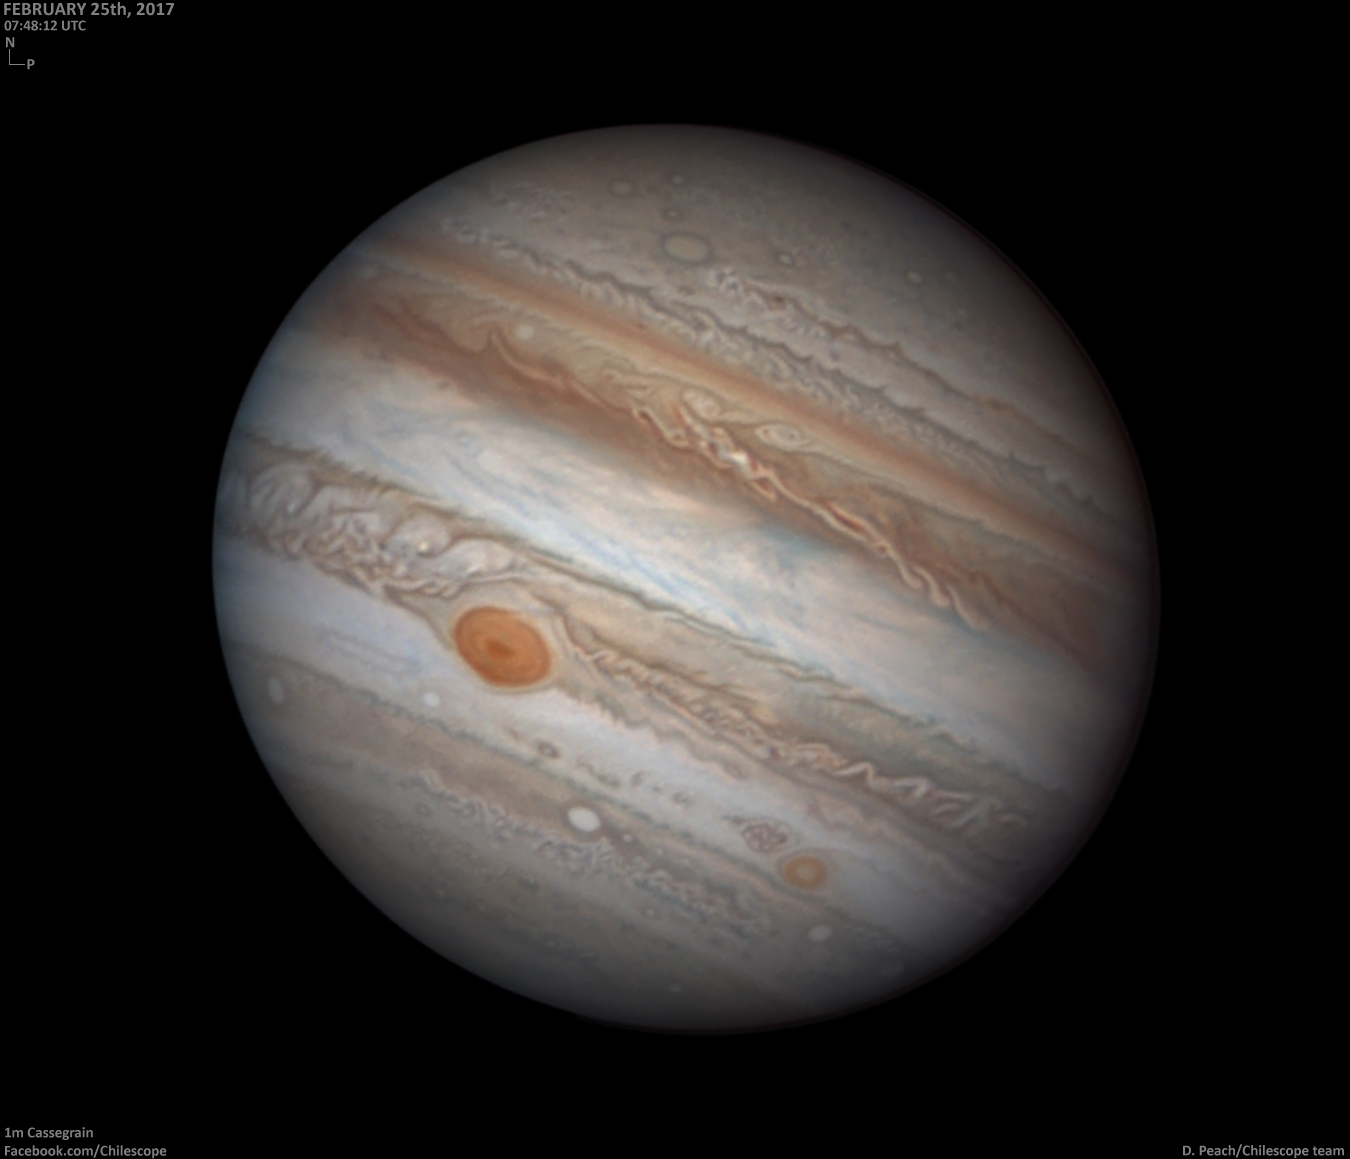 Space in Images - 2017 - 04 - Jupiter on 25 February 2017